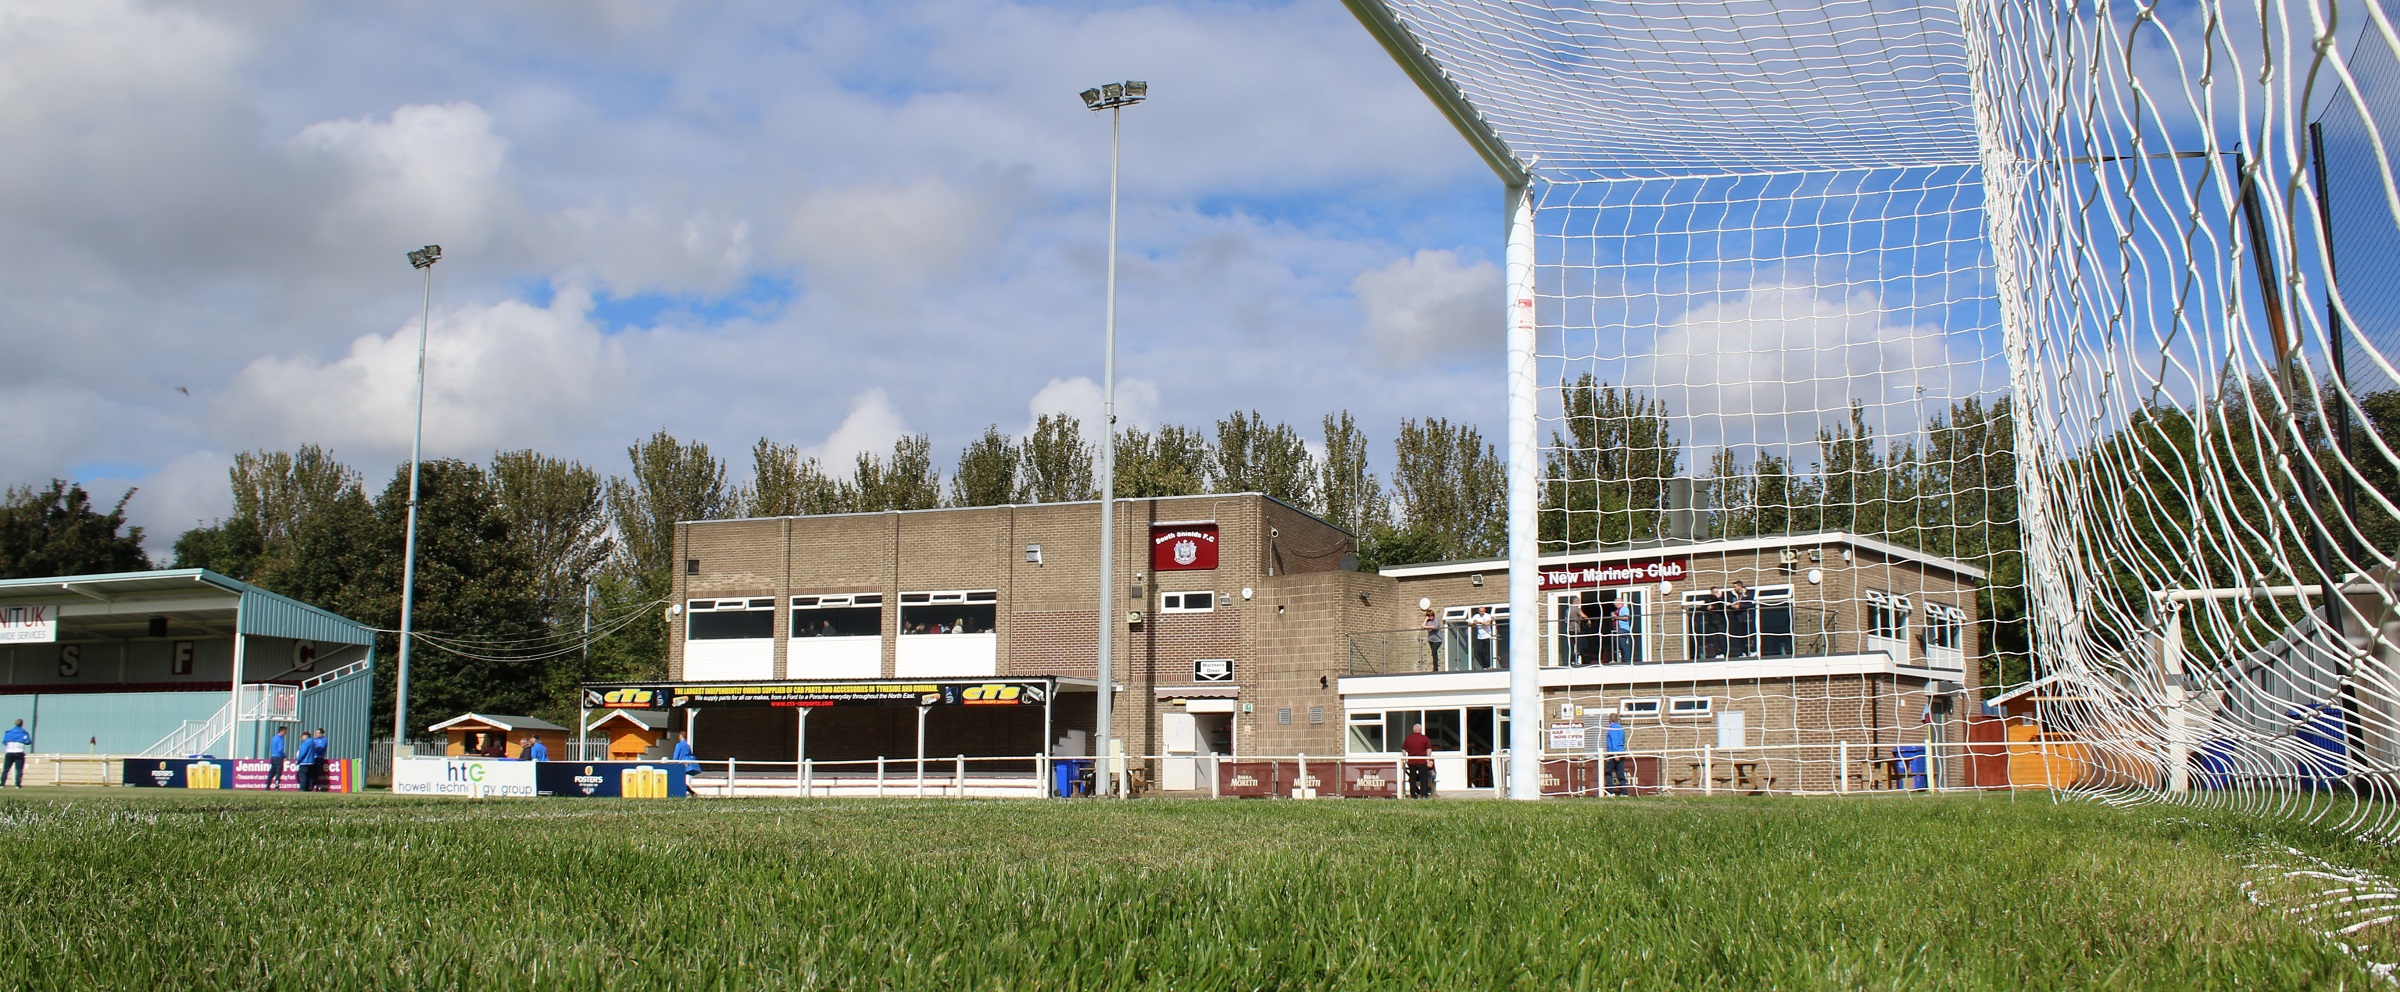 Club Statement: Coleshill Town vs South Shields